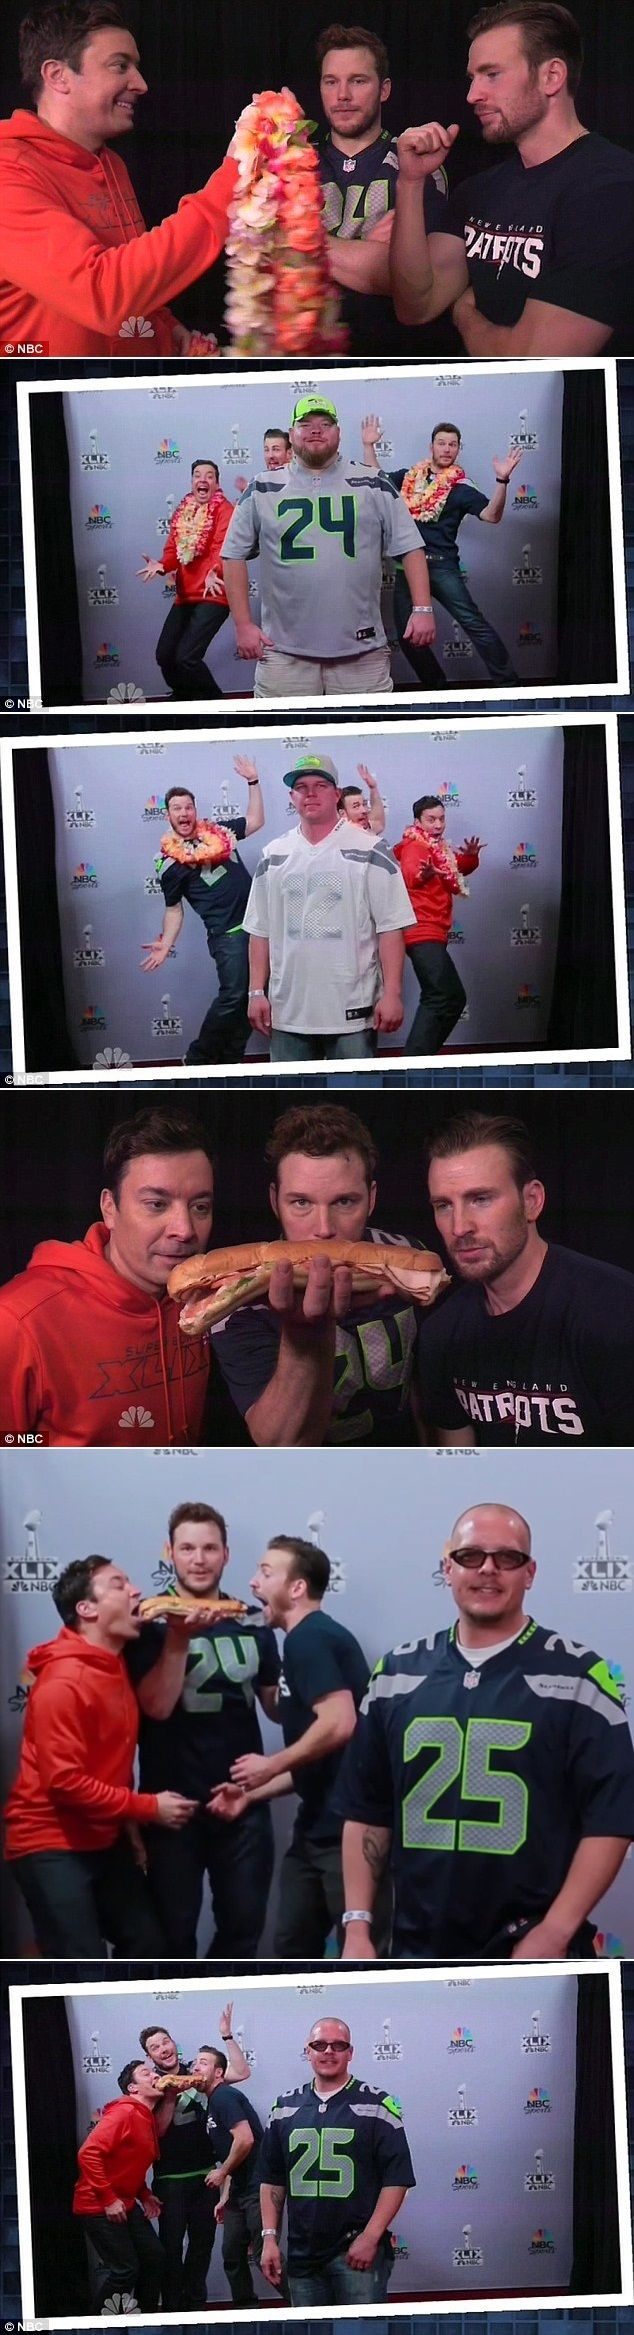 Chris Pratt and Chris Evans photobomb Super Bowl fans' photos with Jimmy Fallon